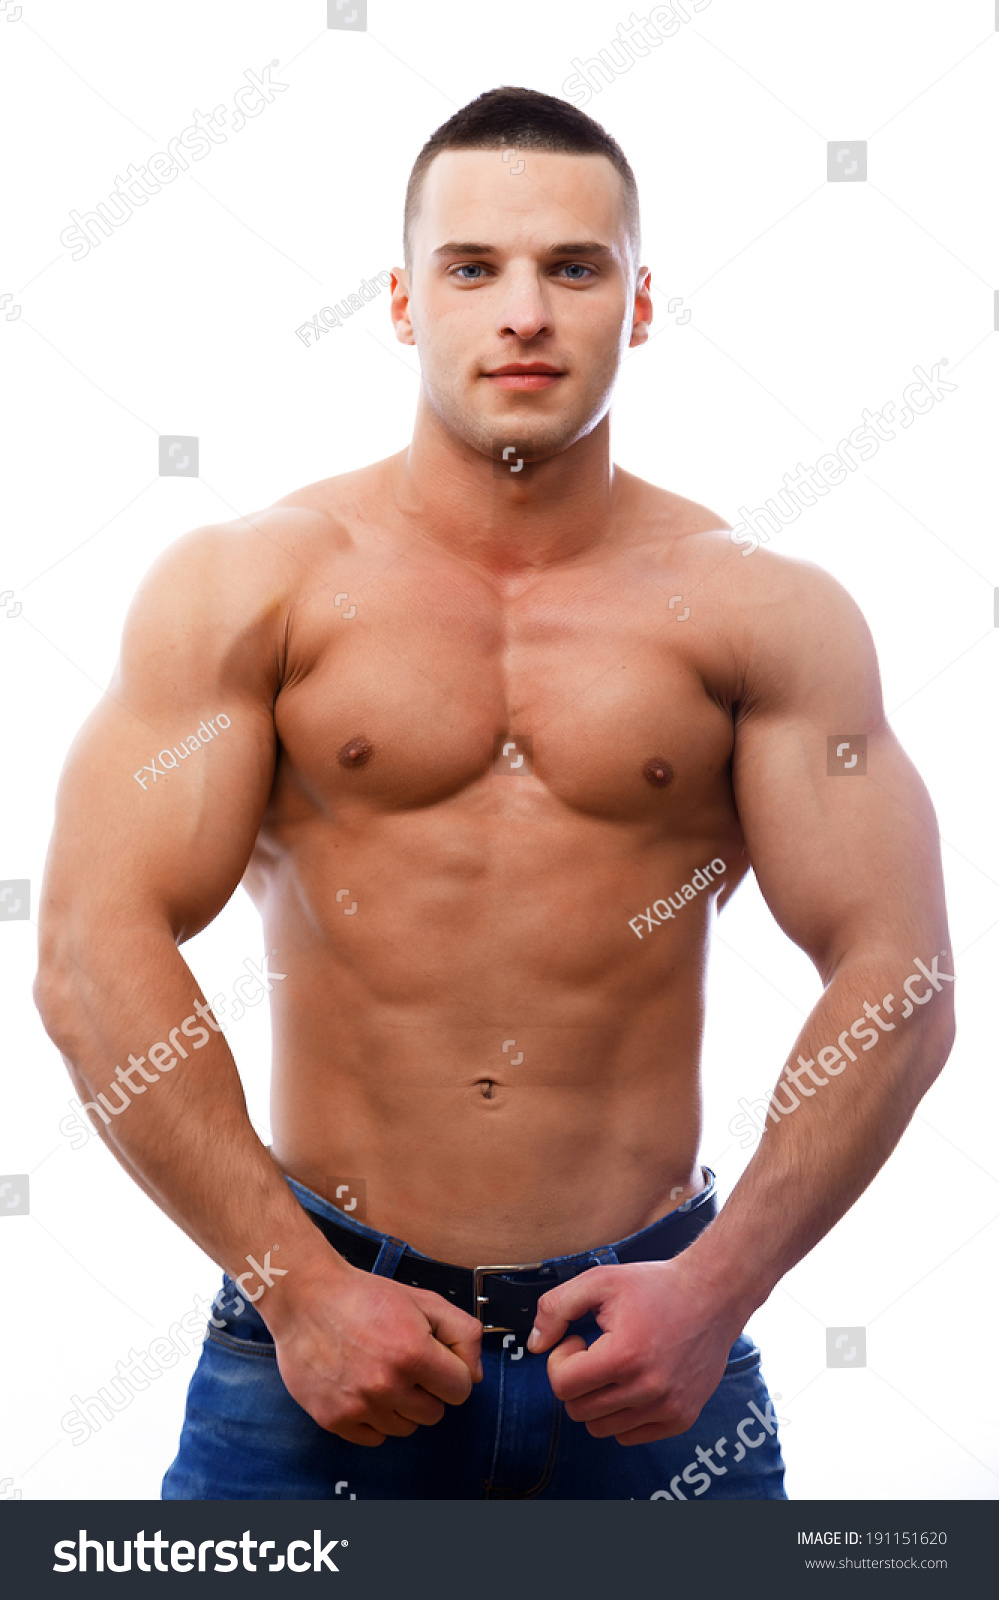 naked man fit body stock photo (royalty free) 191151620 - shutterstock